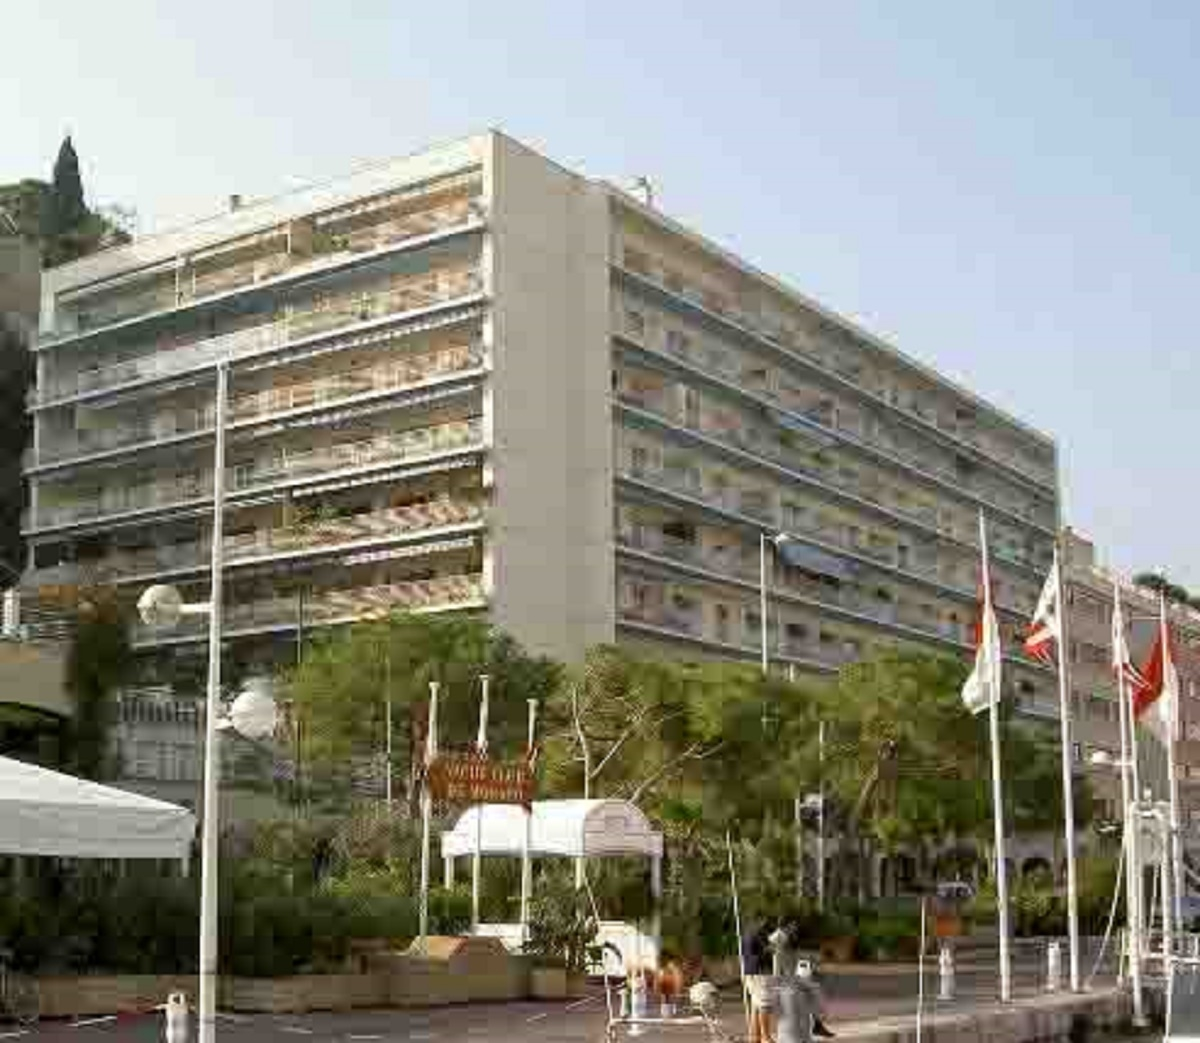 RUSCINO 2 ROOMS NEW MIXED-USE - Offices for sale in Monaco